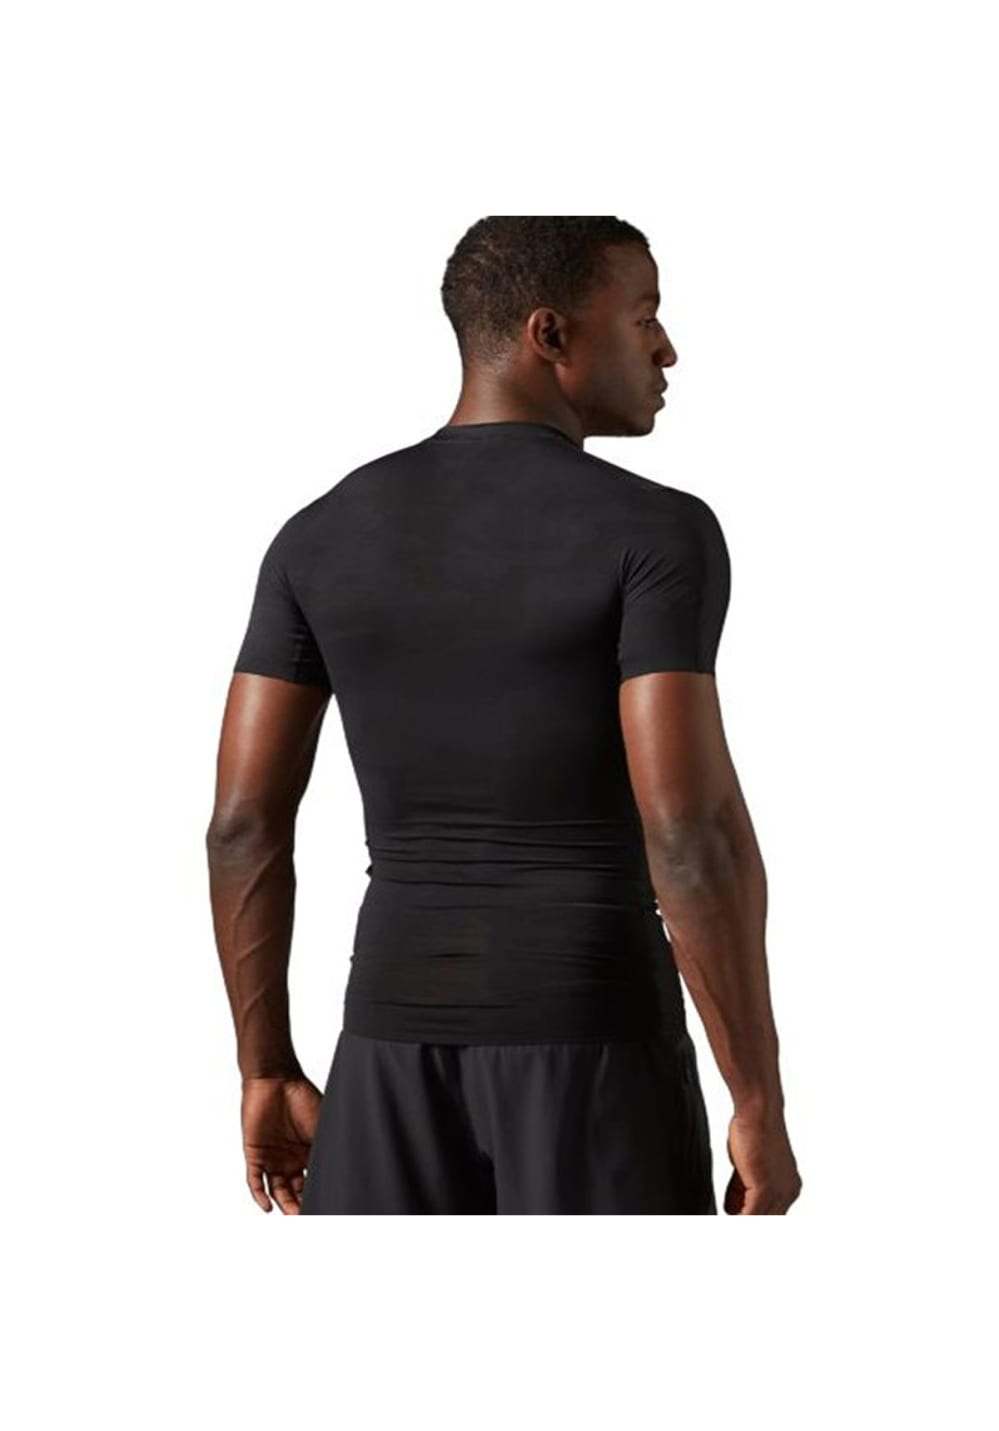 ... Reebok Crossfit Compression - Running tops for Men - Black. Back to  Overview. 1  2. Previous df88dd2e1